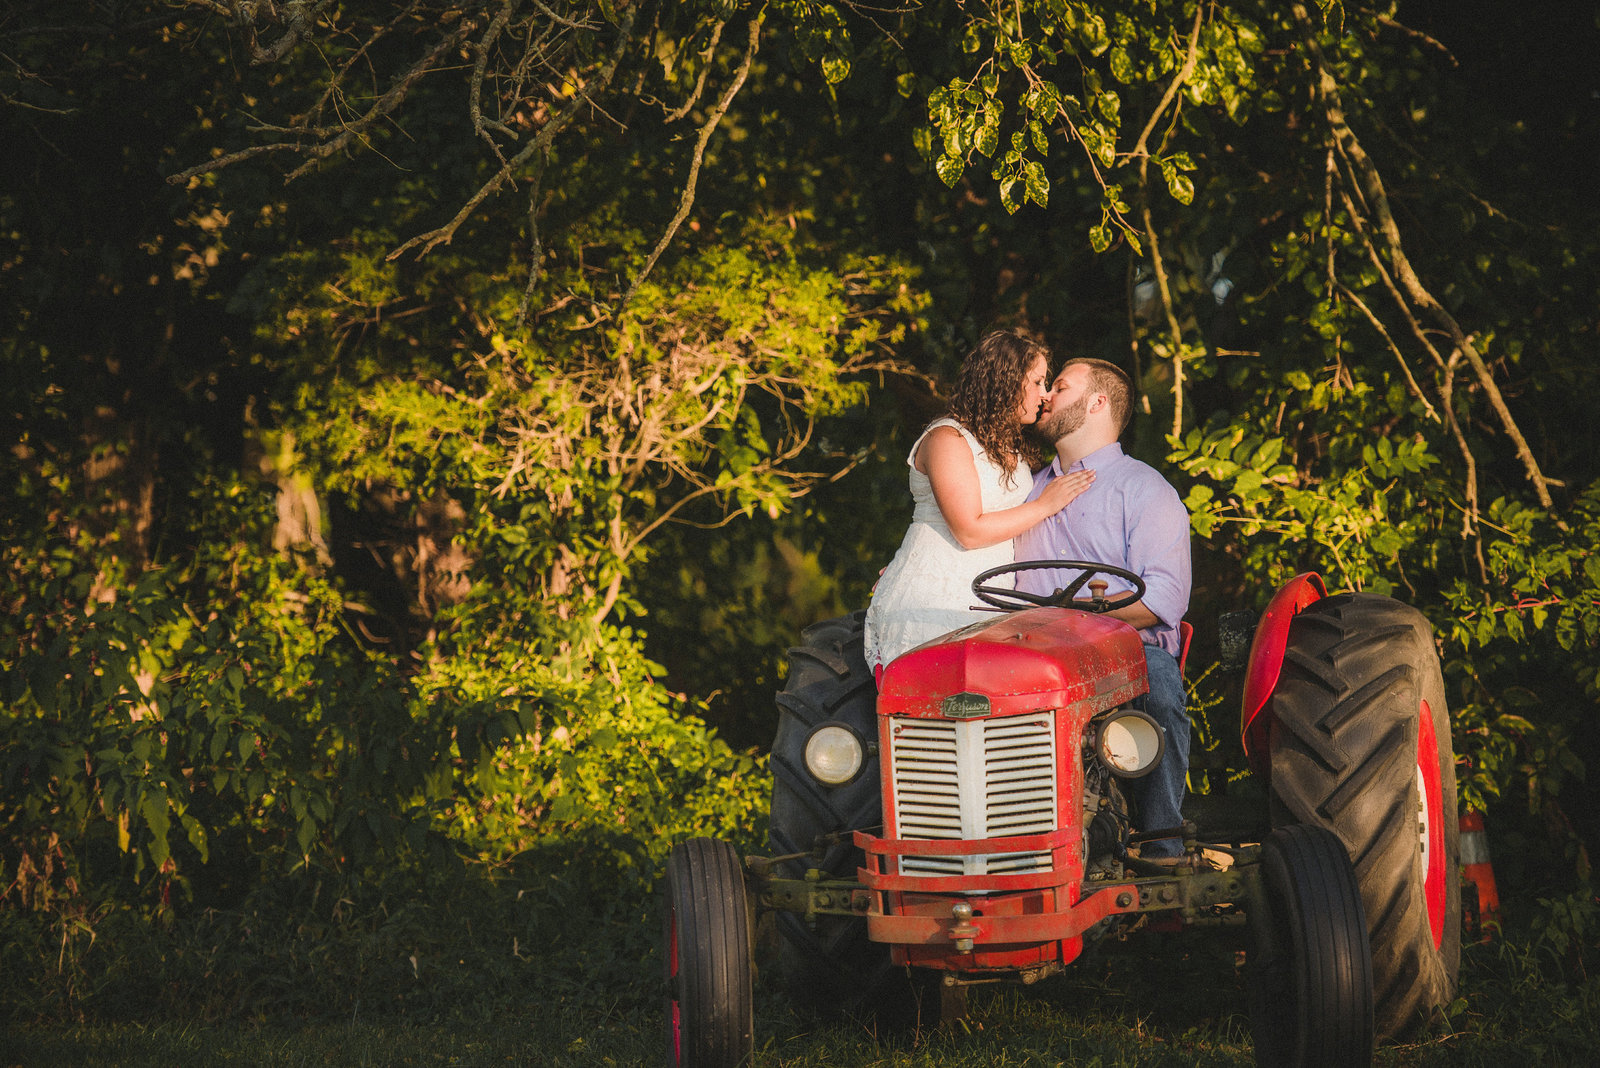 NJ_Rustic_Engagement_Photography068